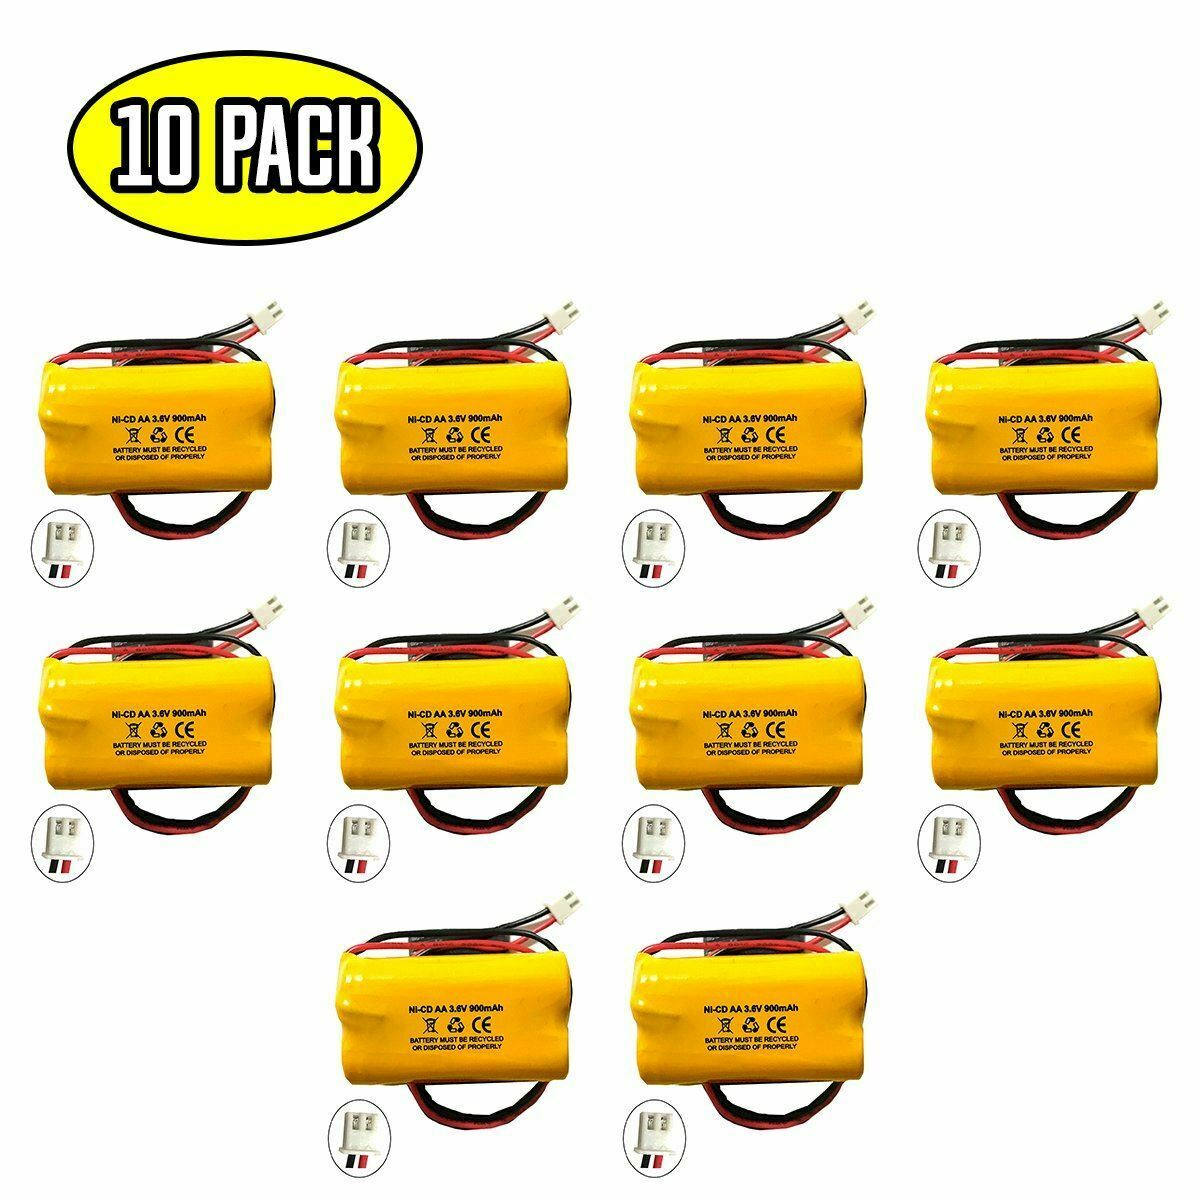 (10 pack) 3.6v 900mAh Ni-CD Battery Pack Replacement for Emergency / Exit Light